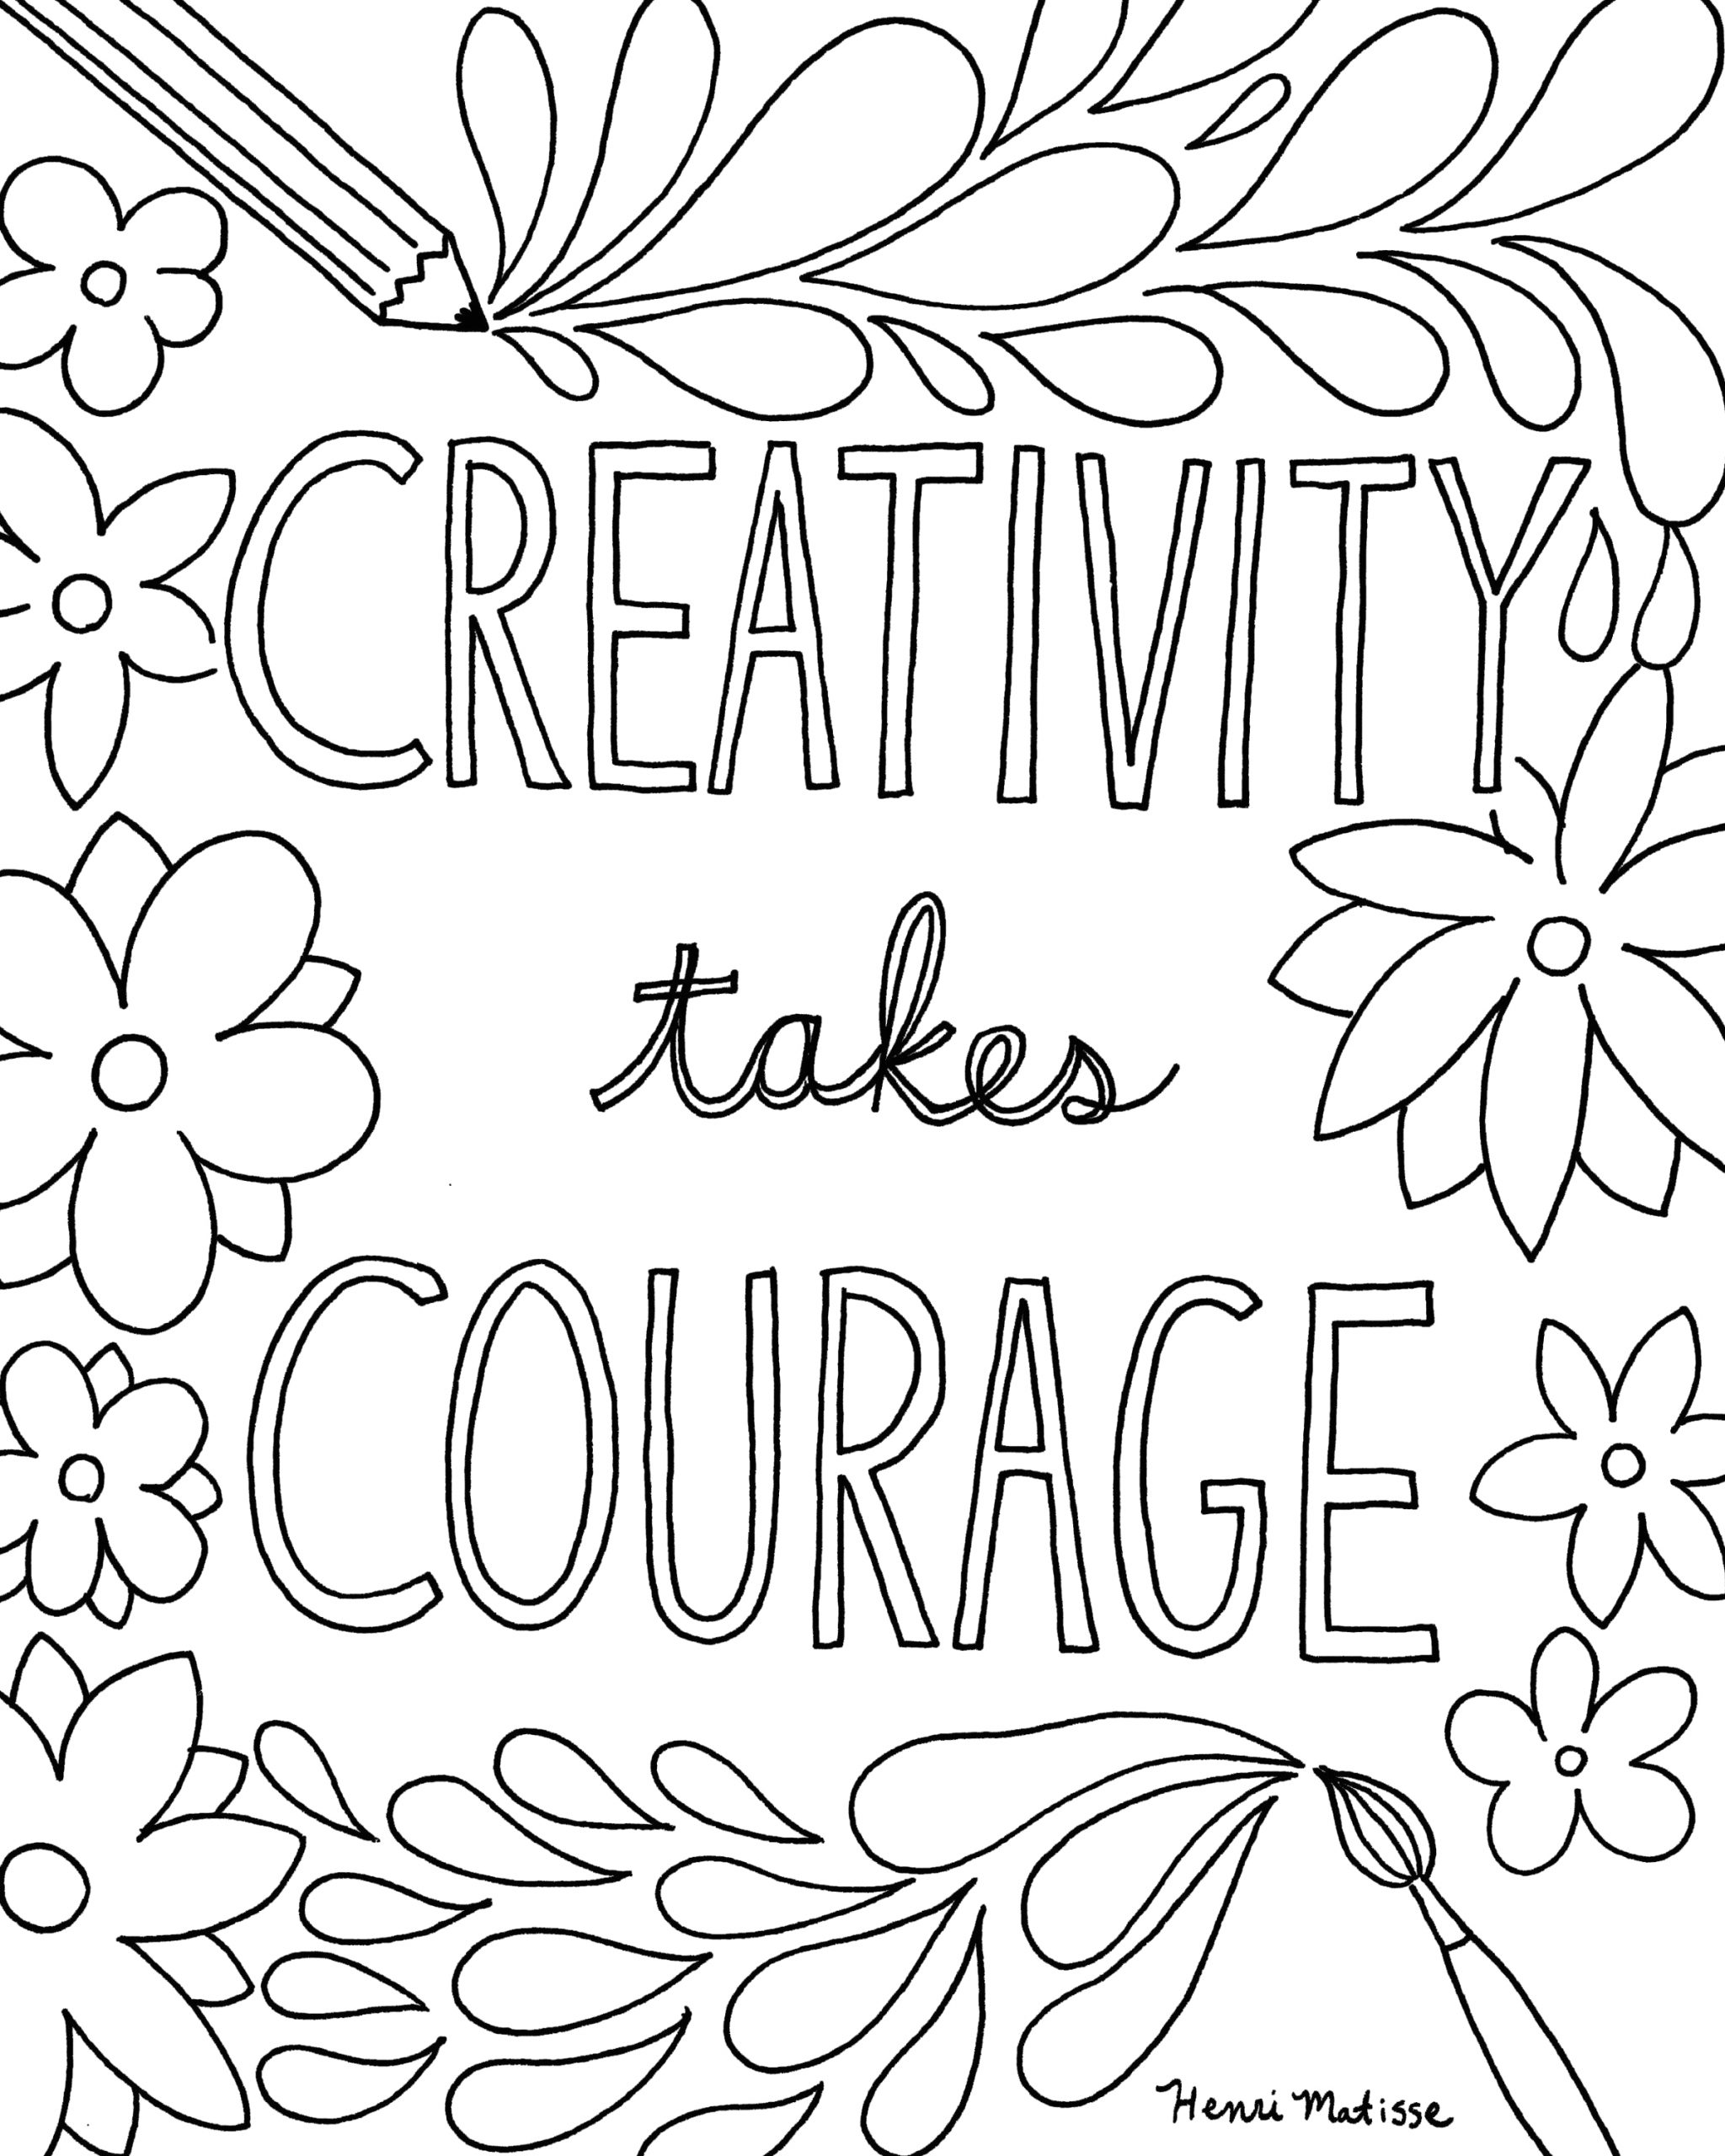 Free Printable Sayings Coloring Pages for Adults Craftsy Express Your Creativity